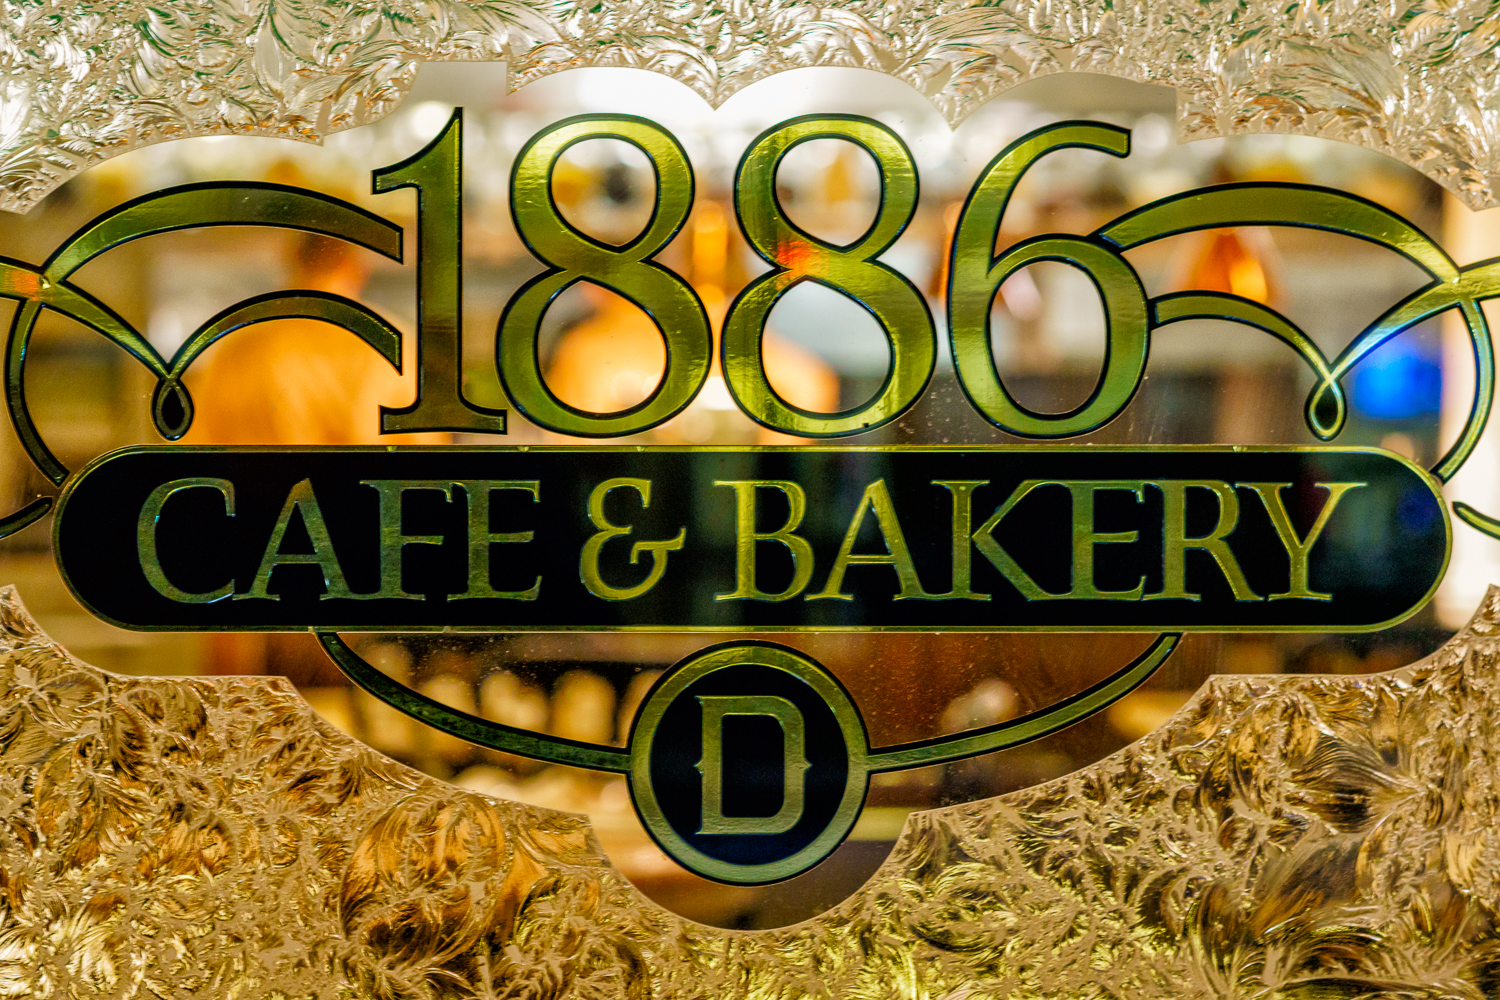 1886 Cafe and Bakery